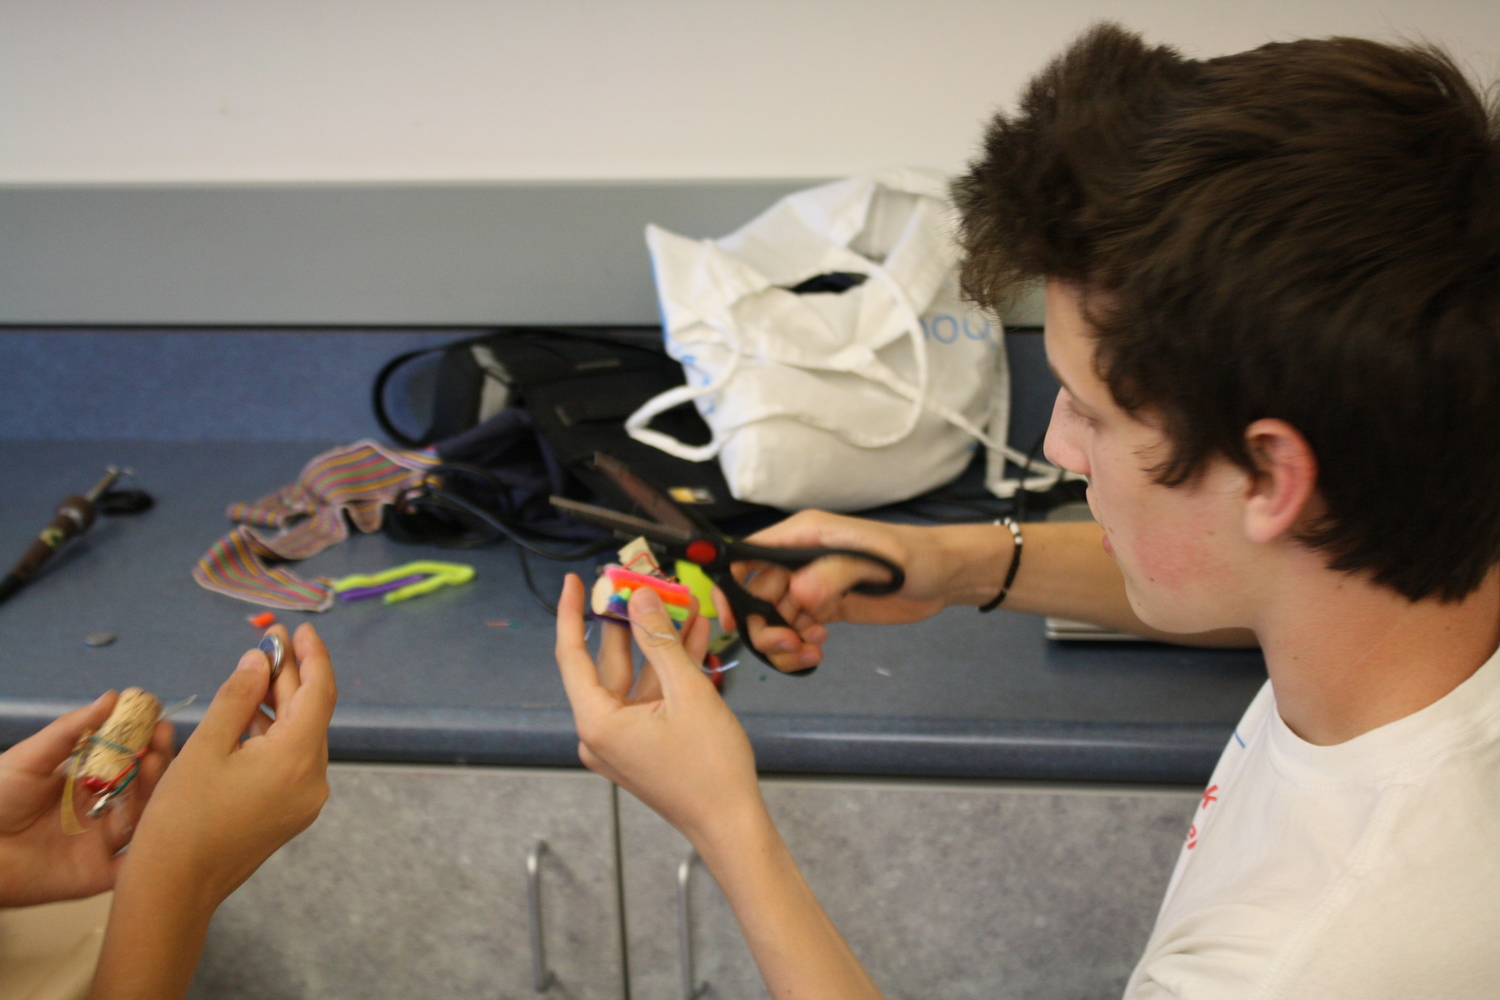 Circuits And Robotics Masters Make Cool Stuff At Camp Recreate Wiring For On Thursday Each Robot Master Spent Some Time Seven Different Learning Stations Rotating Through A Circuit Design Challenge With Ryan Playing